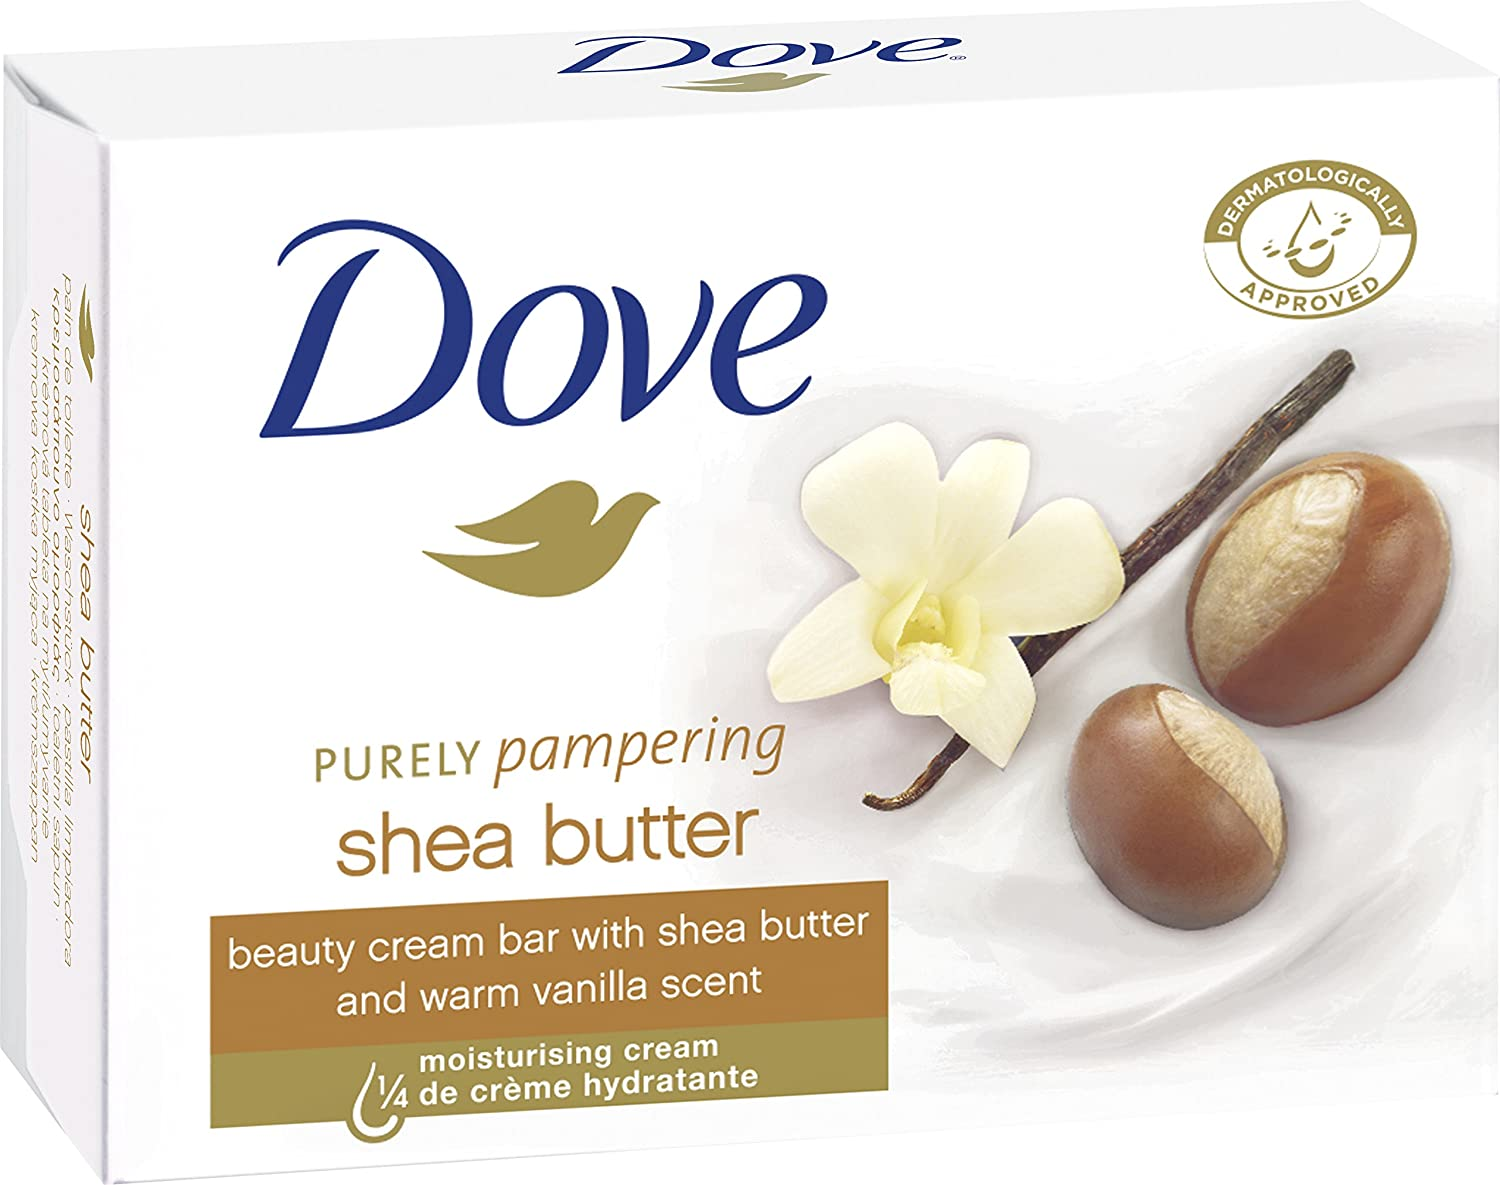 Dove Waschstück Cream Bar Seife Sheabutter, 6er Pack (6 x 100 g) 8711600804364